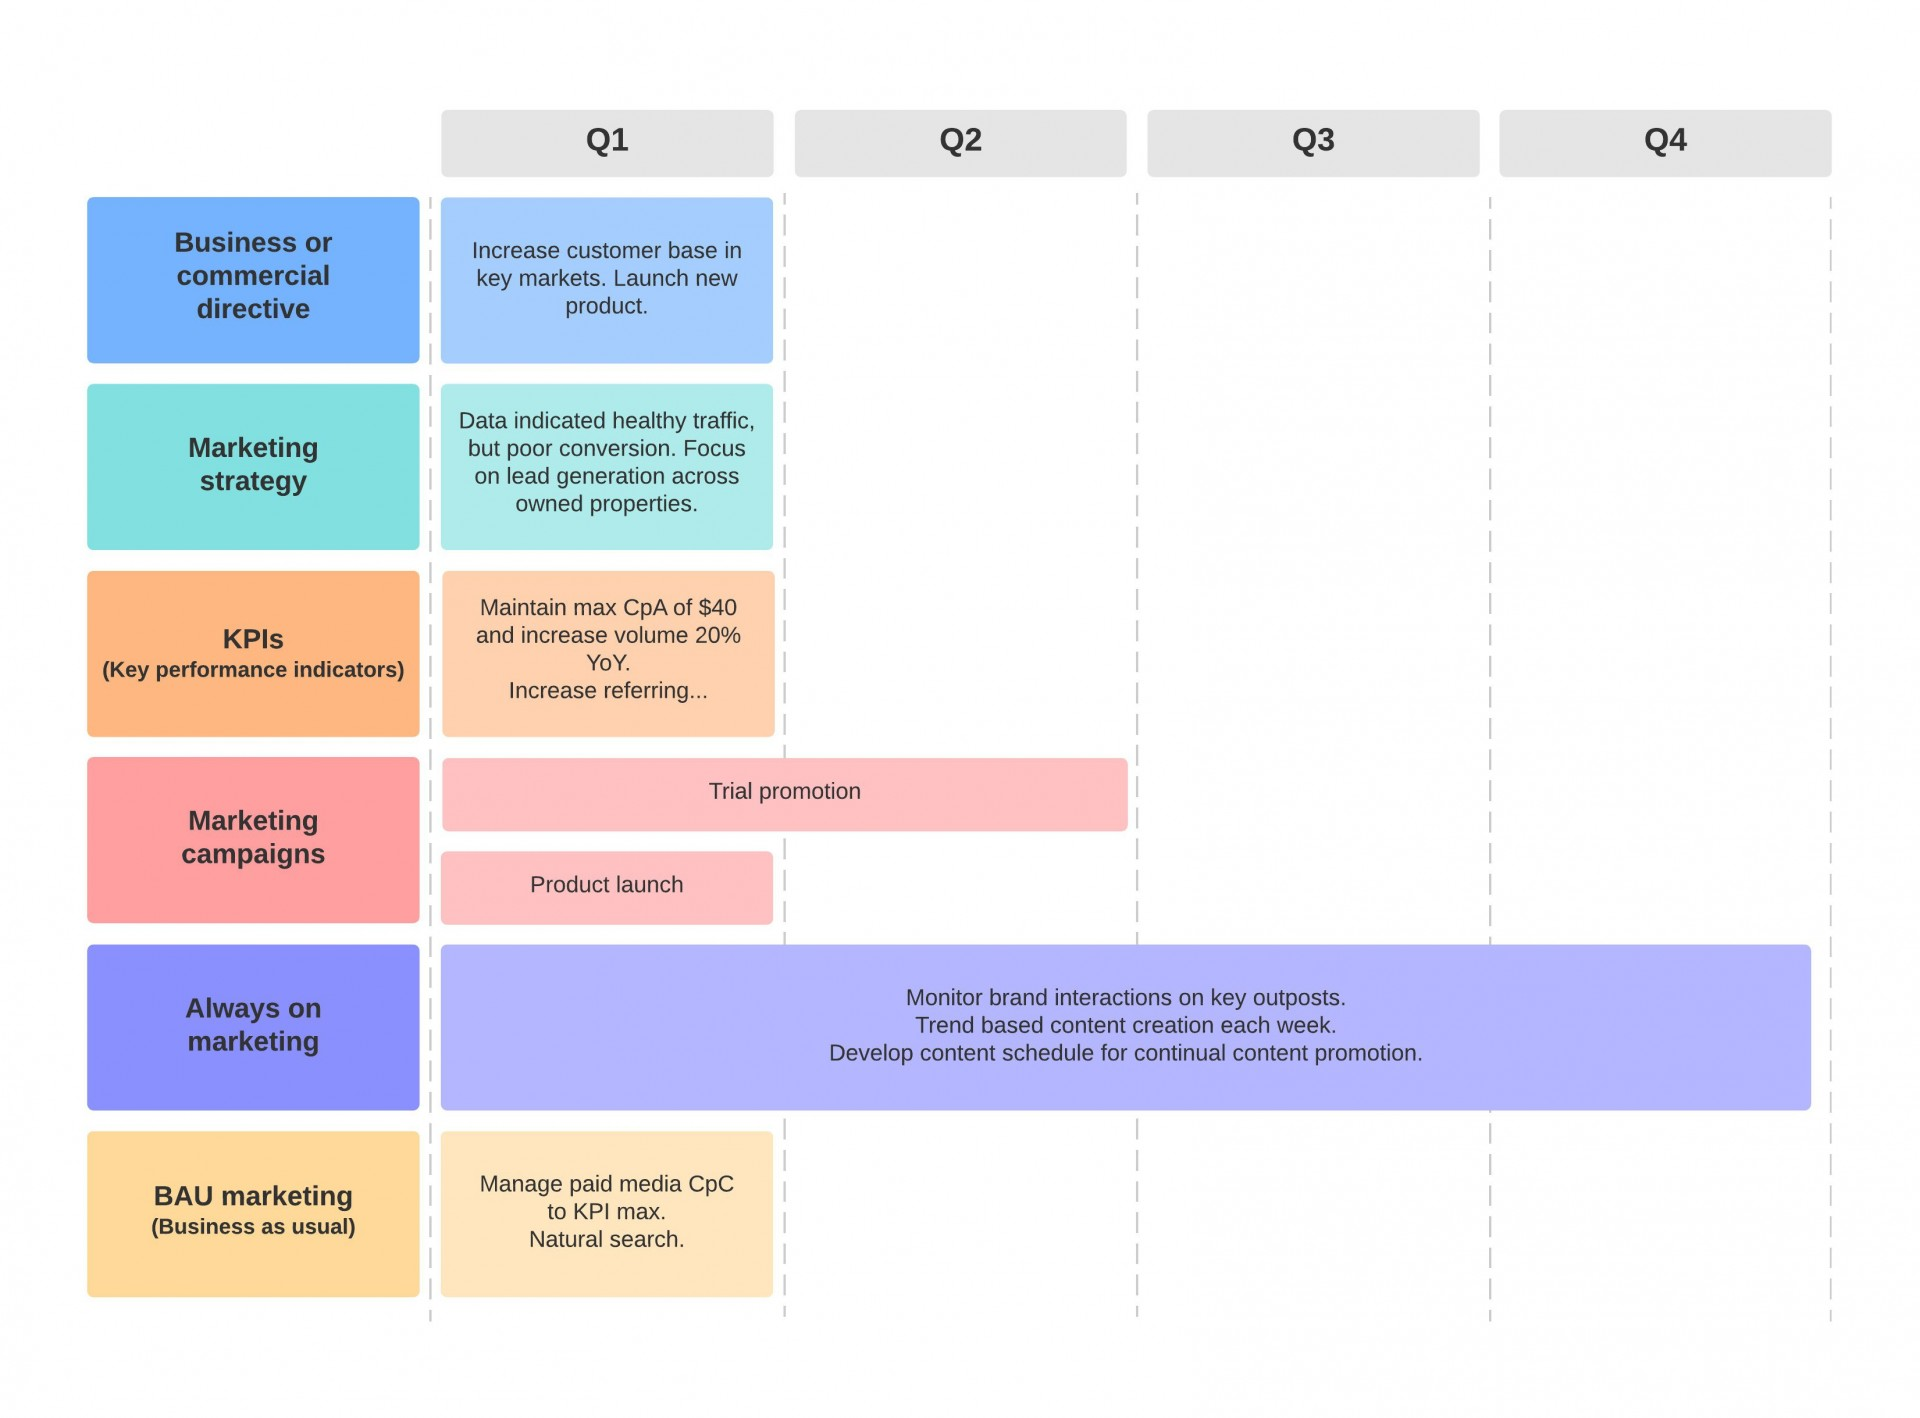 008 Archaicawful Free Marketing Plan Template Photo  Hubspot Download Ppt1920